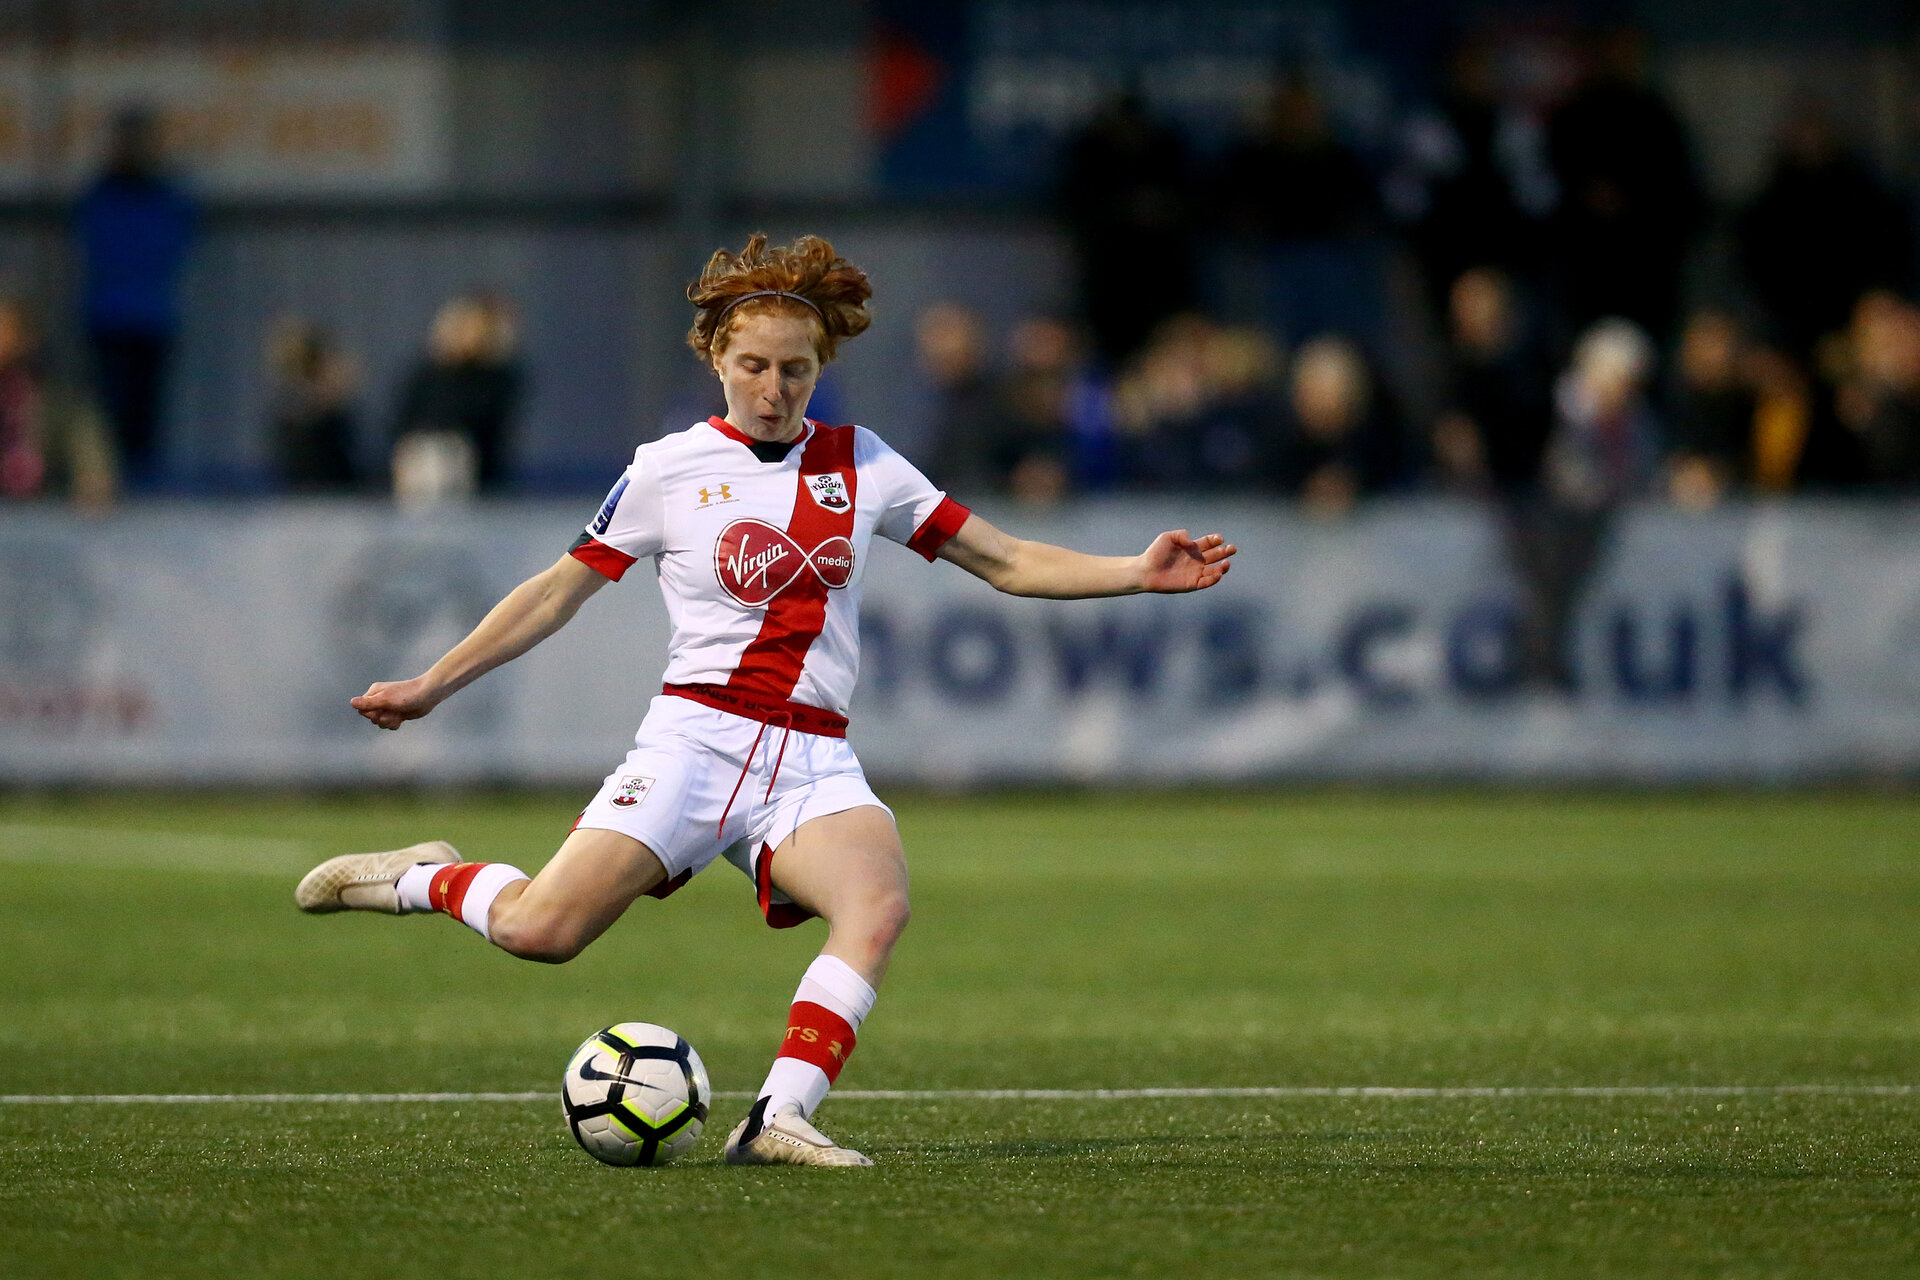 HAVANT, ENGLAND - MAY 19: Molly Mott of Southampton during the Hampshire FA Women's Senior Cup Final against Portsmouth Women and Southampton Women at Westleigh Park on May 19, 2021 in Havant, England. (Photo by Isabelle Field/Southampton FC via Getty Images)